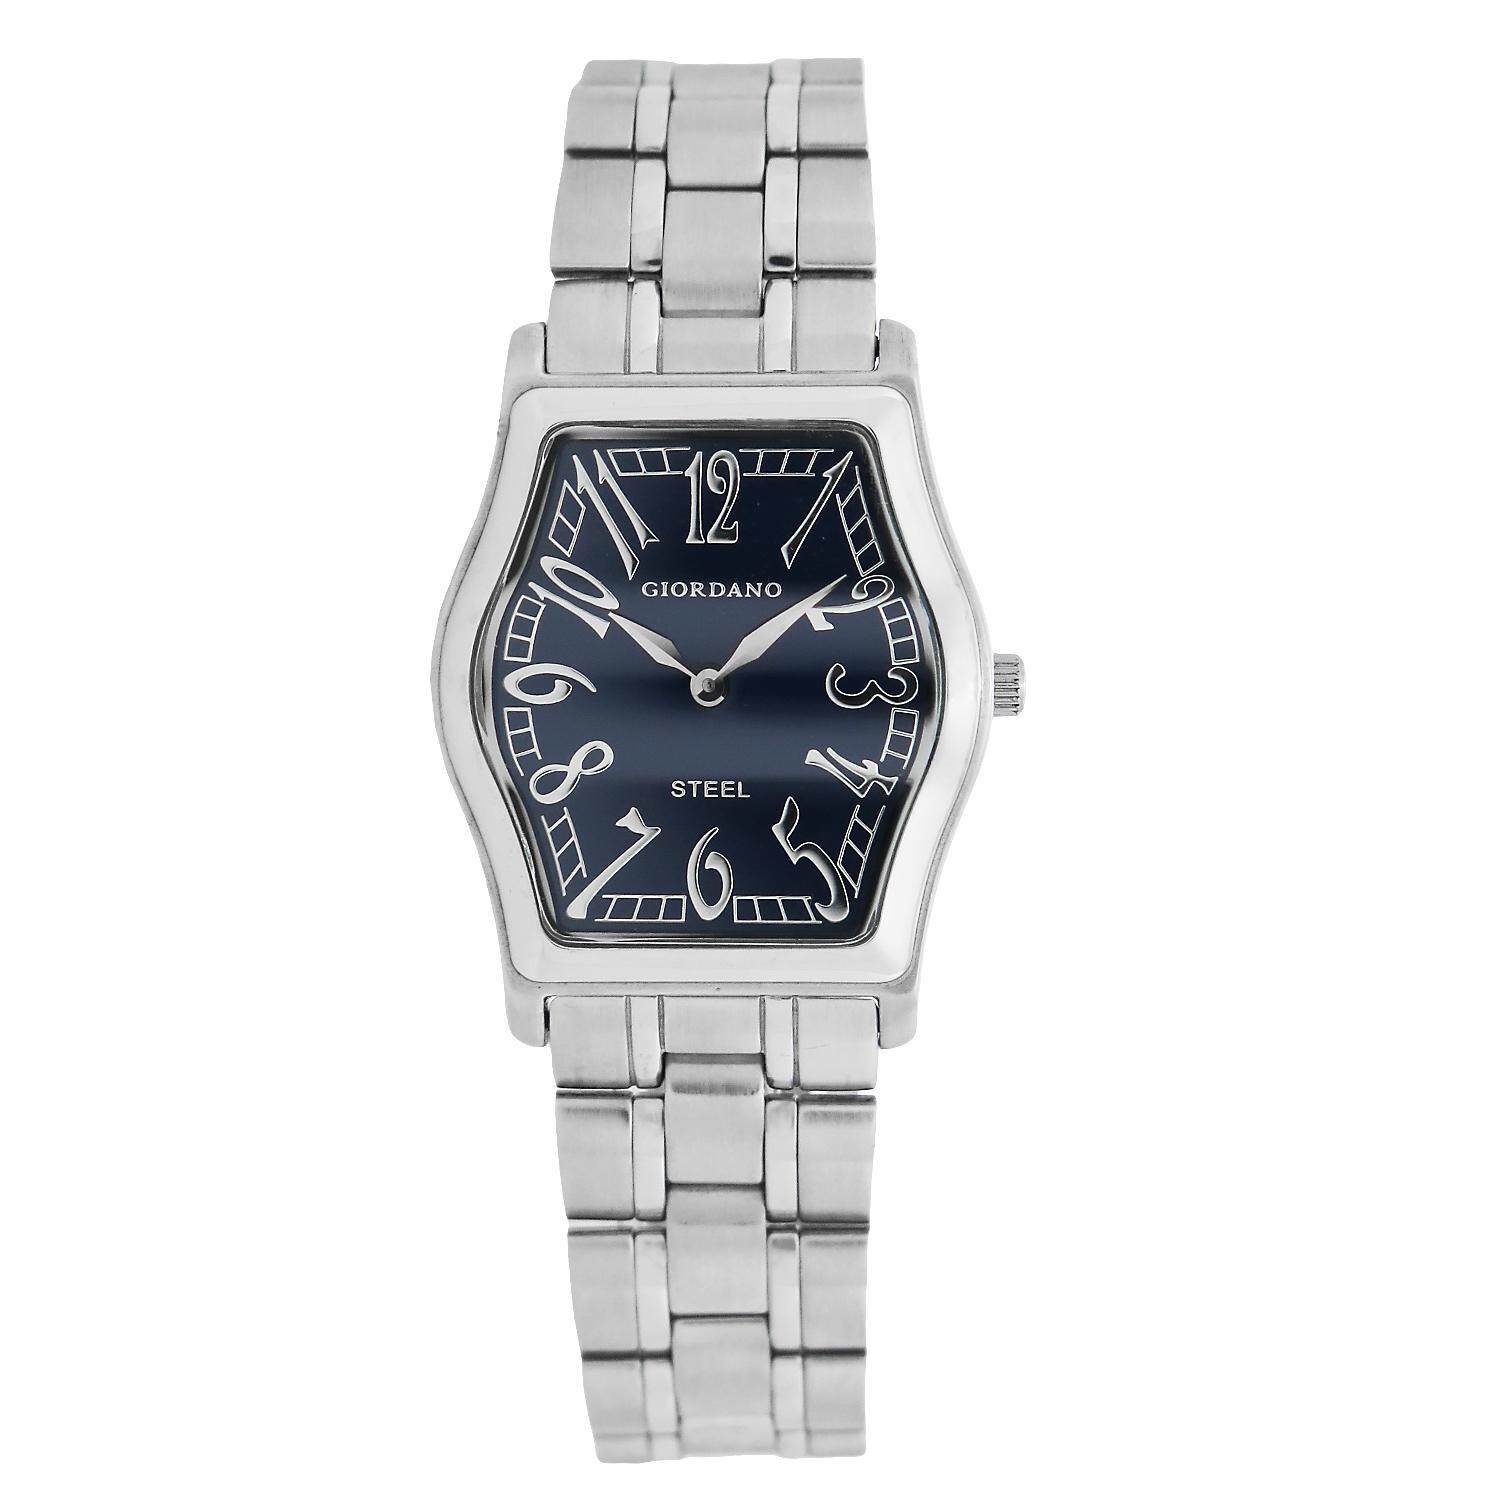 Giordano All Stainless Steel Special Designed cutting Glass Men Watch -SB3237-BL Malaysia